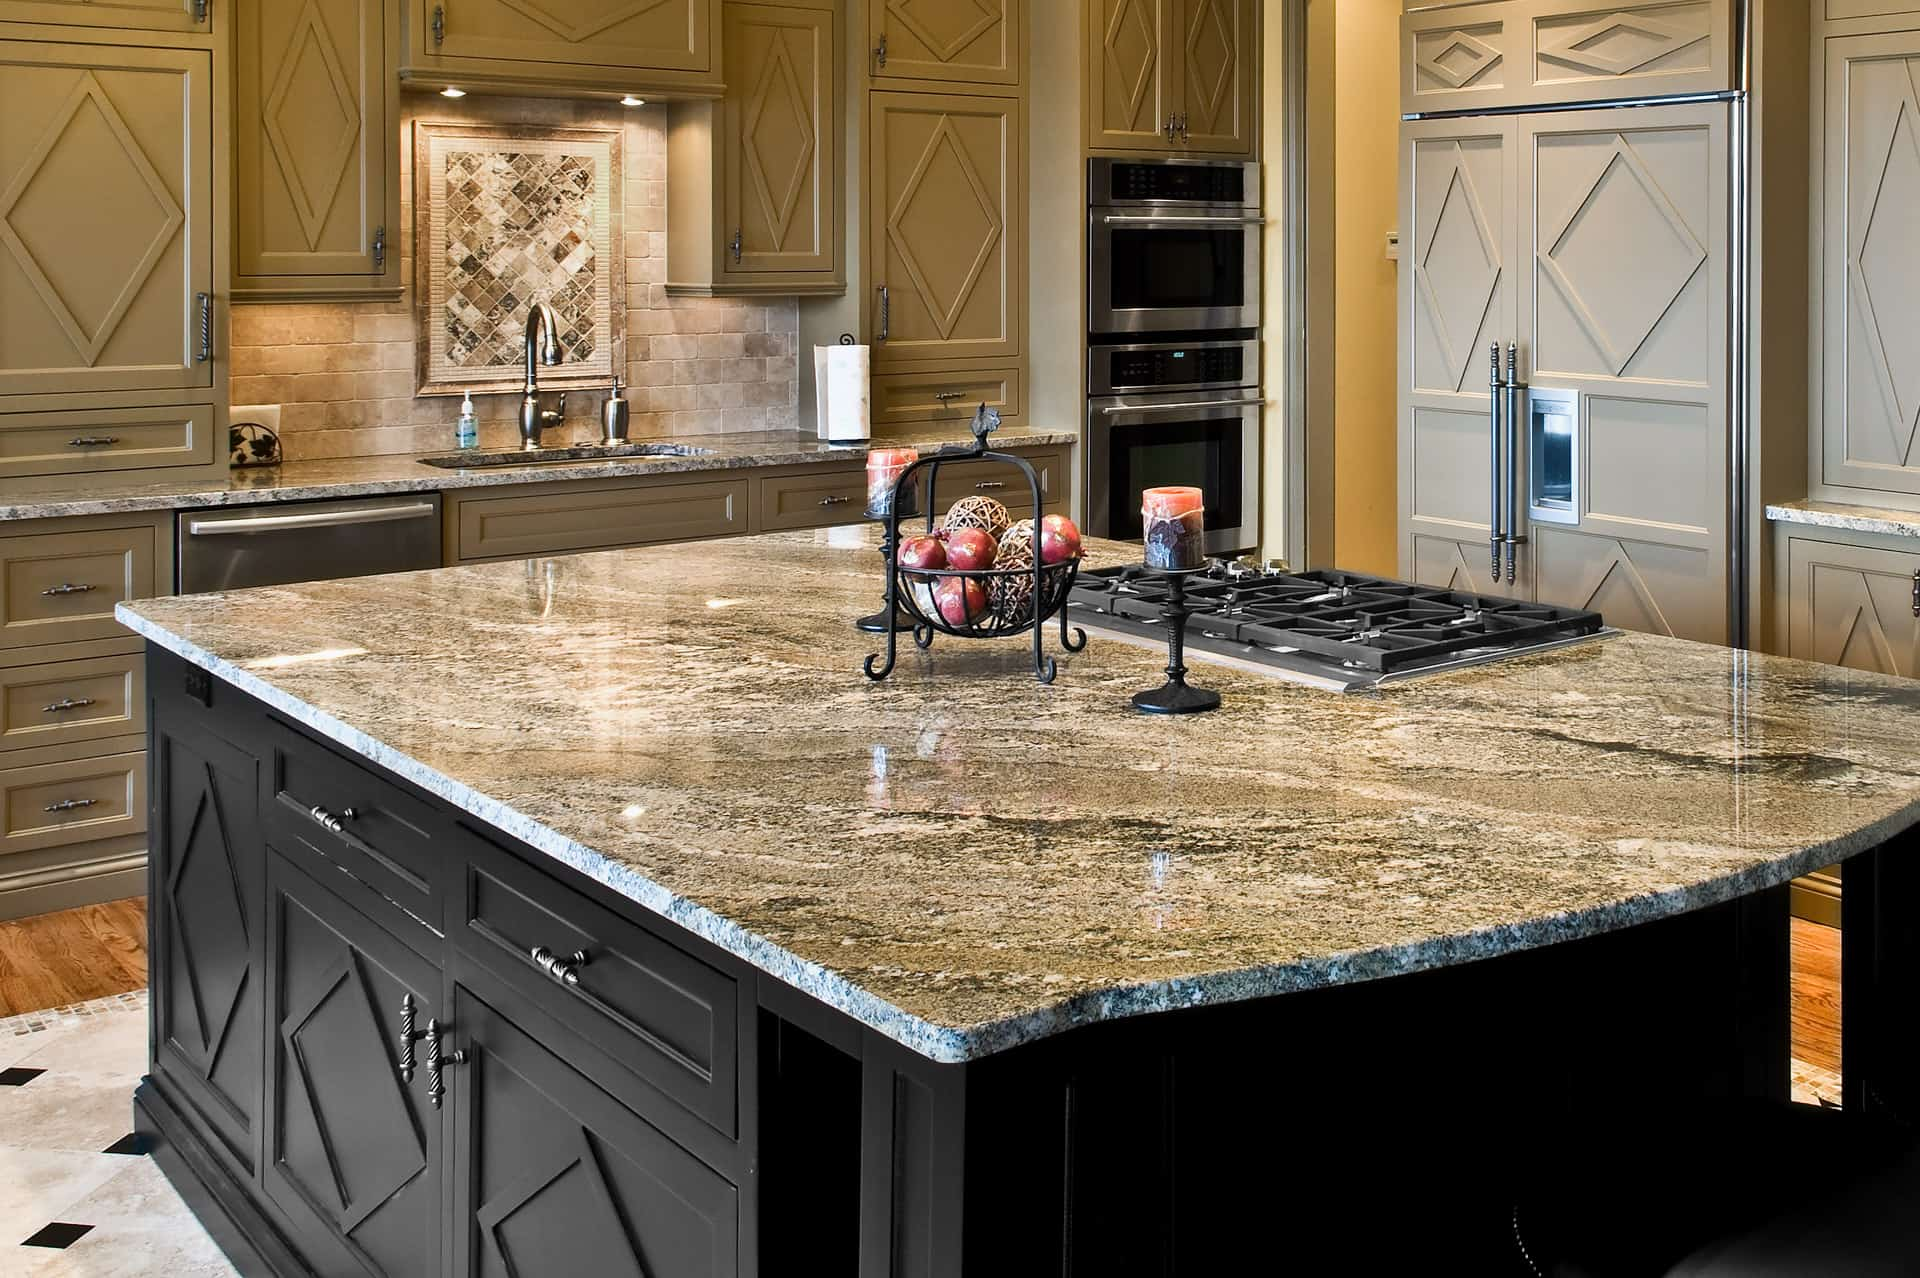 Kitchen Countertops Quartz the benefits of engineered stone countertops | countertop guides